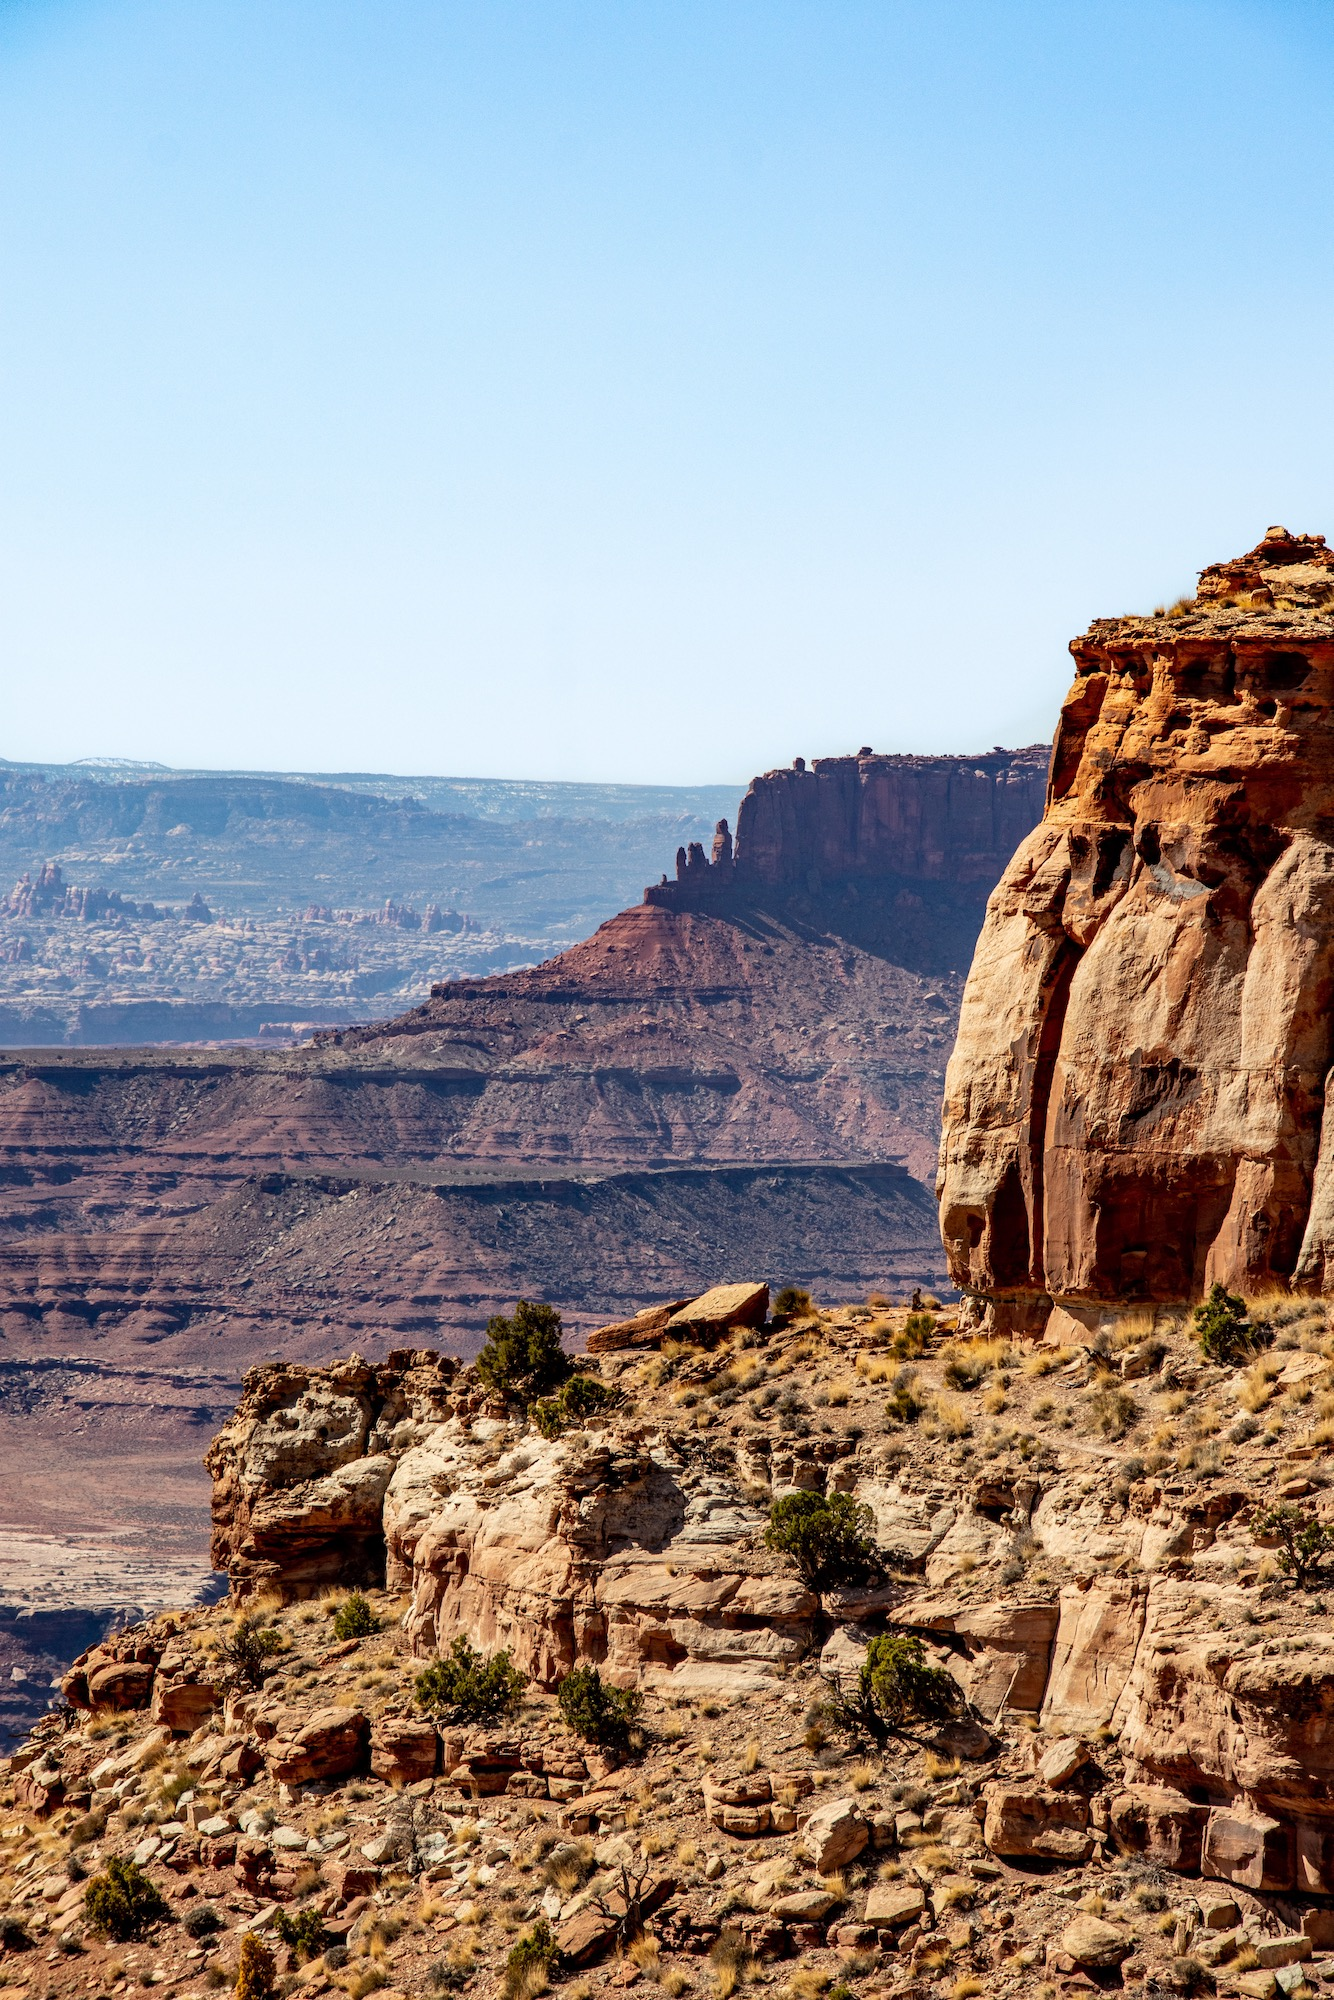 The rest of the trail clings to the edge of a 1,200 ft bluff and then descends all the way to the White Rim Road.